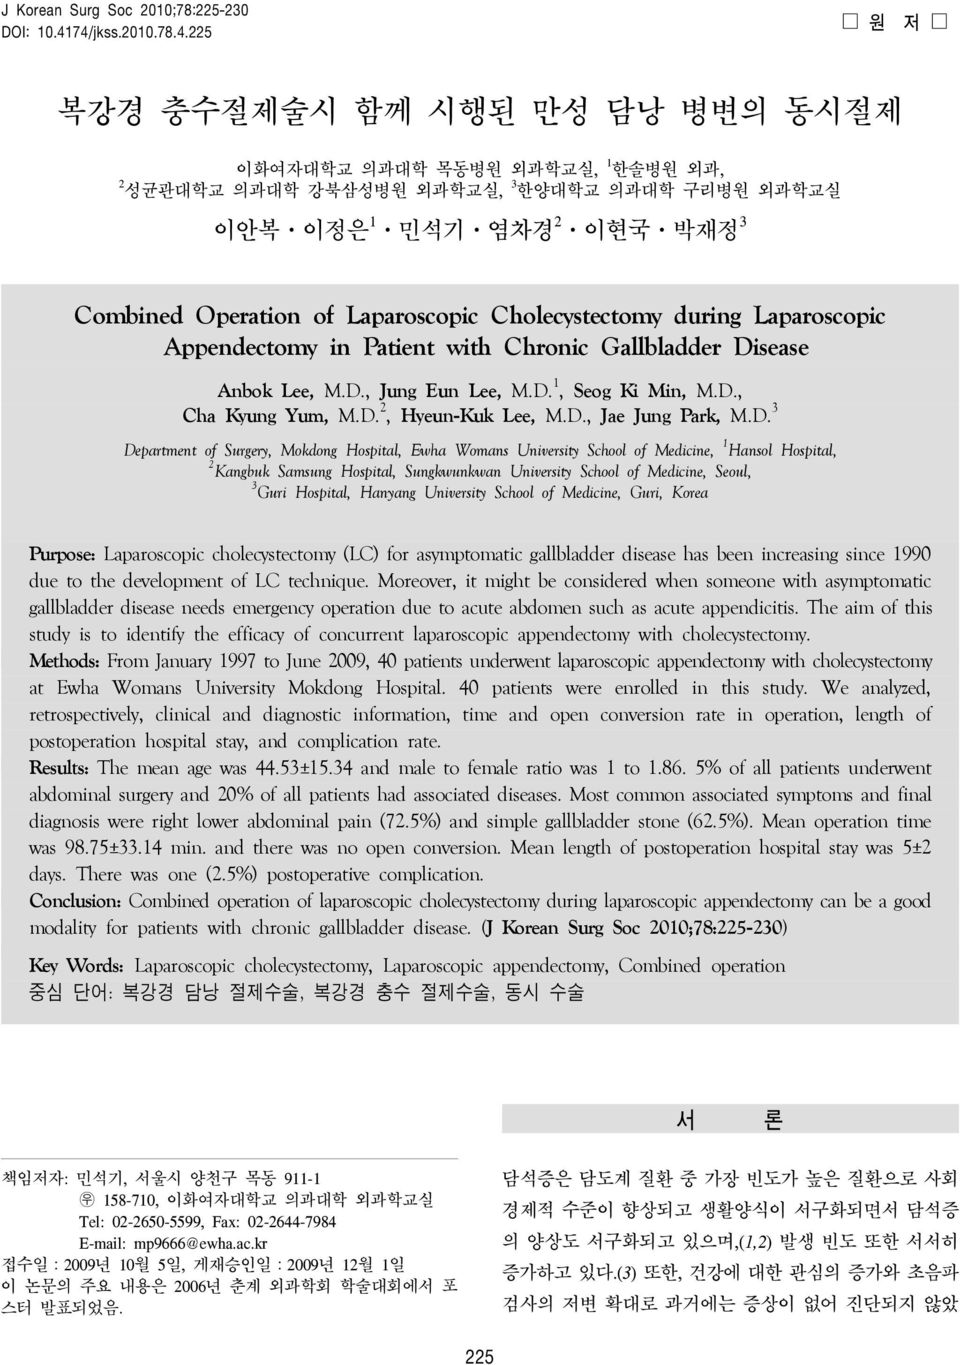 of Laparoscopic Cholecystectomy during Laparoscopic Appendectomy in Patient with Chronic Gallbladder Disease Anbok Lee, M.D., Jung Eun Lee, M.D. 1, Seog Ki Min, M.D., Cha Kyung Yum, M.D. 2, Hyeun-Kuk Lee, M.